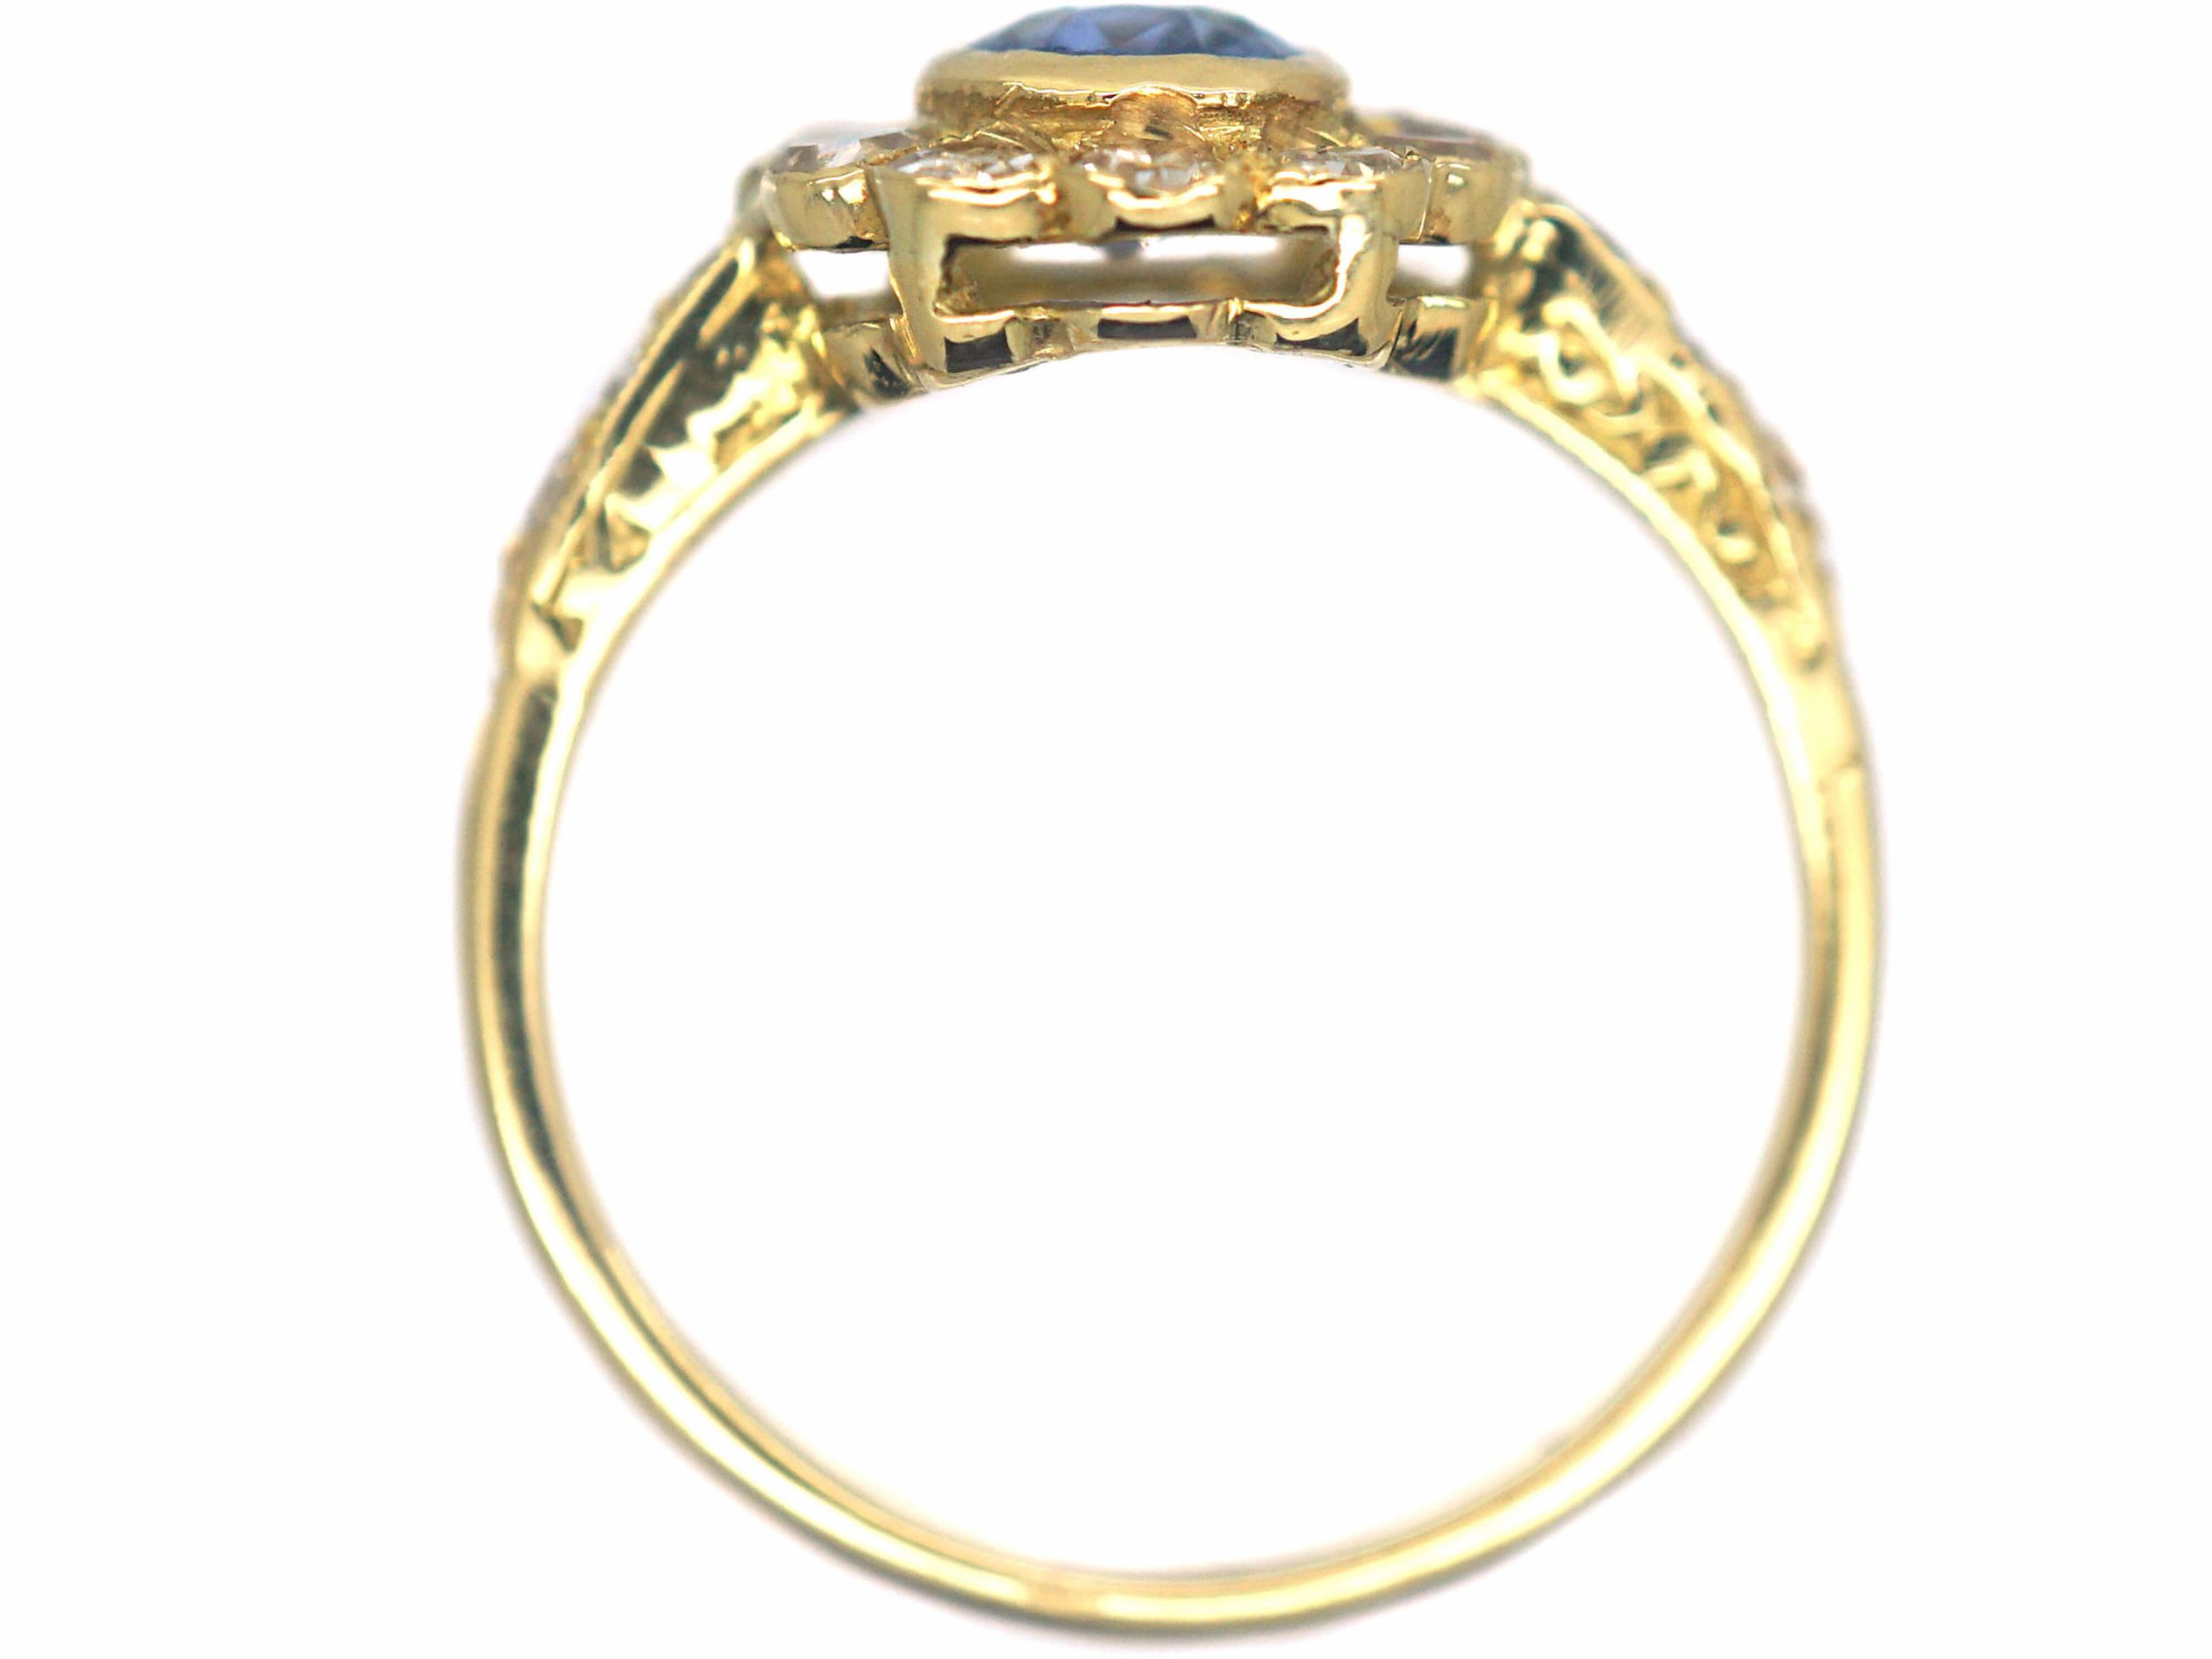 18ct Gold Sapphire & Diamond Cluster Ring with Diamond Set Shoulders